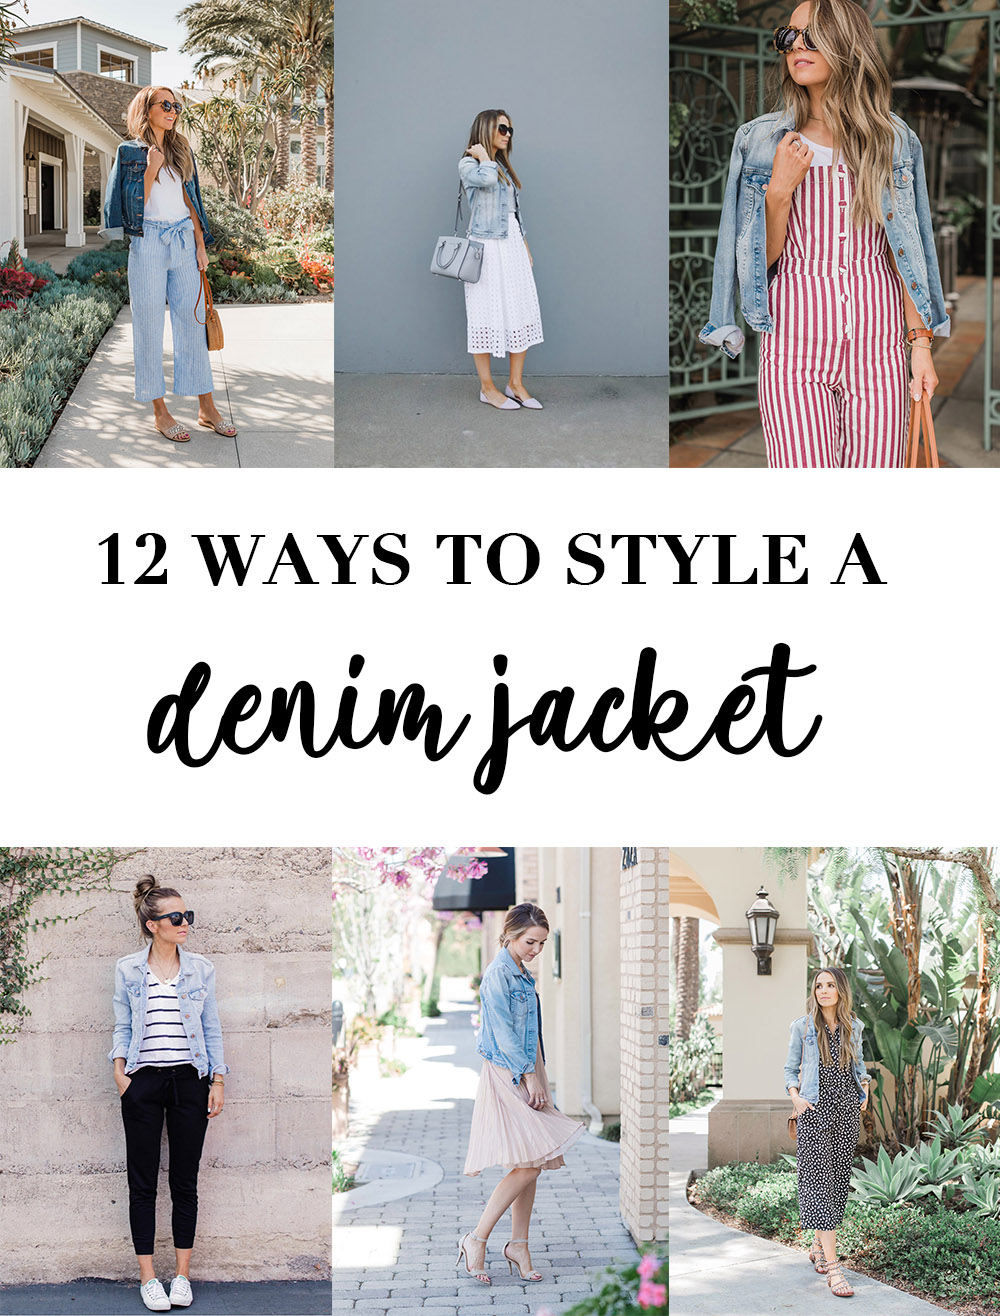 12 ways to style a denim jacket